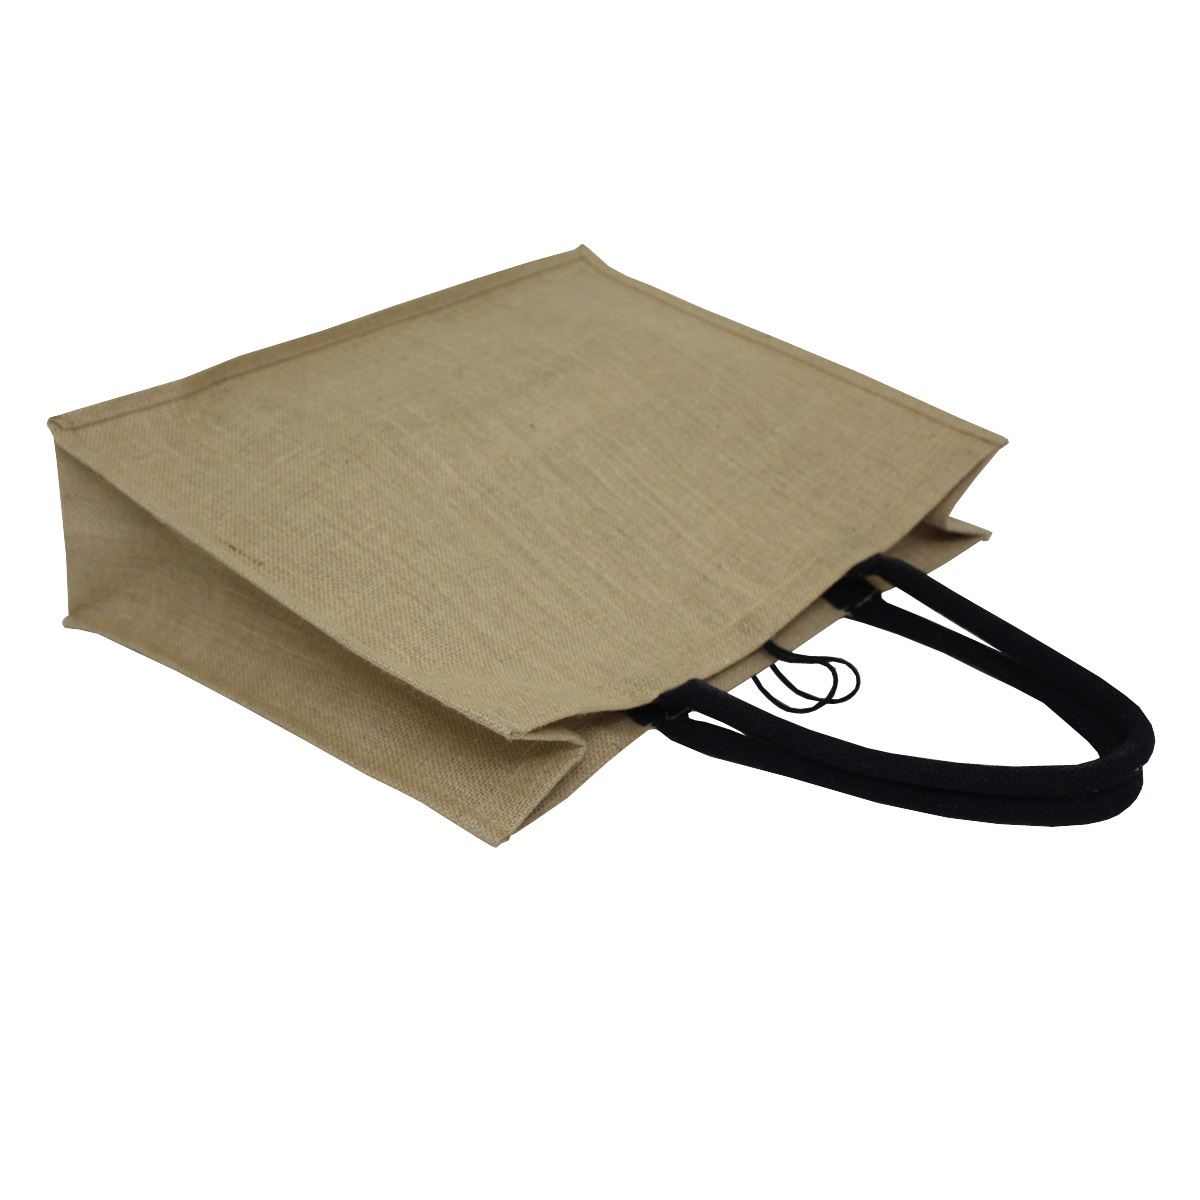 PP Laminated Jute Tote Bag With Front Juco Pocket & Padded Rope Handle